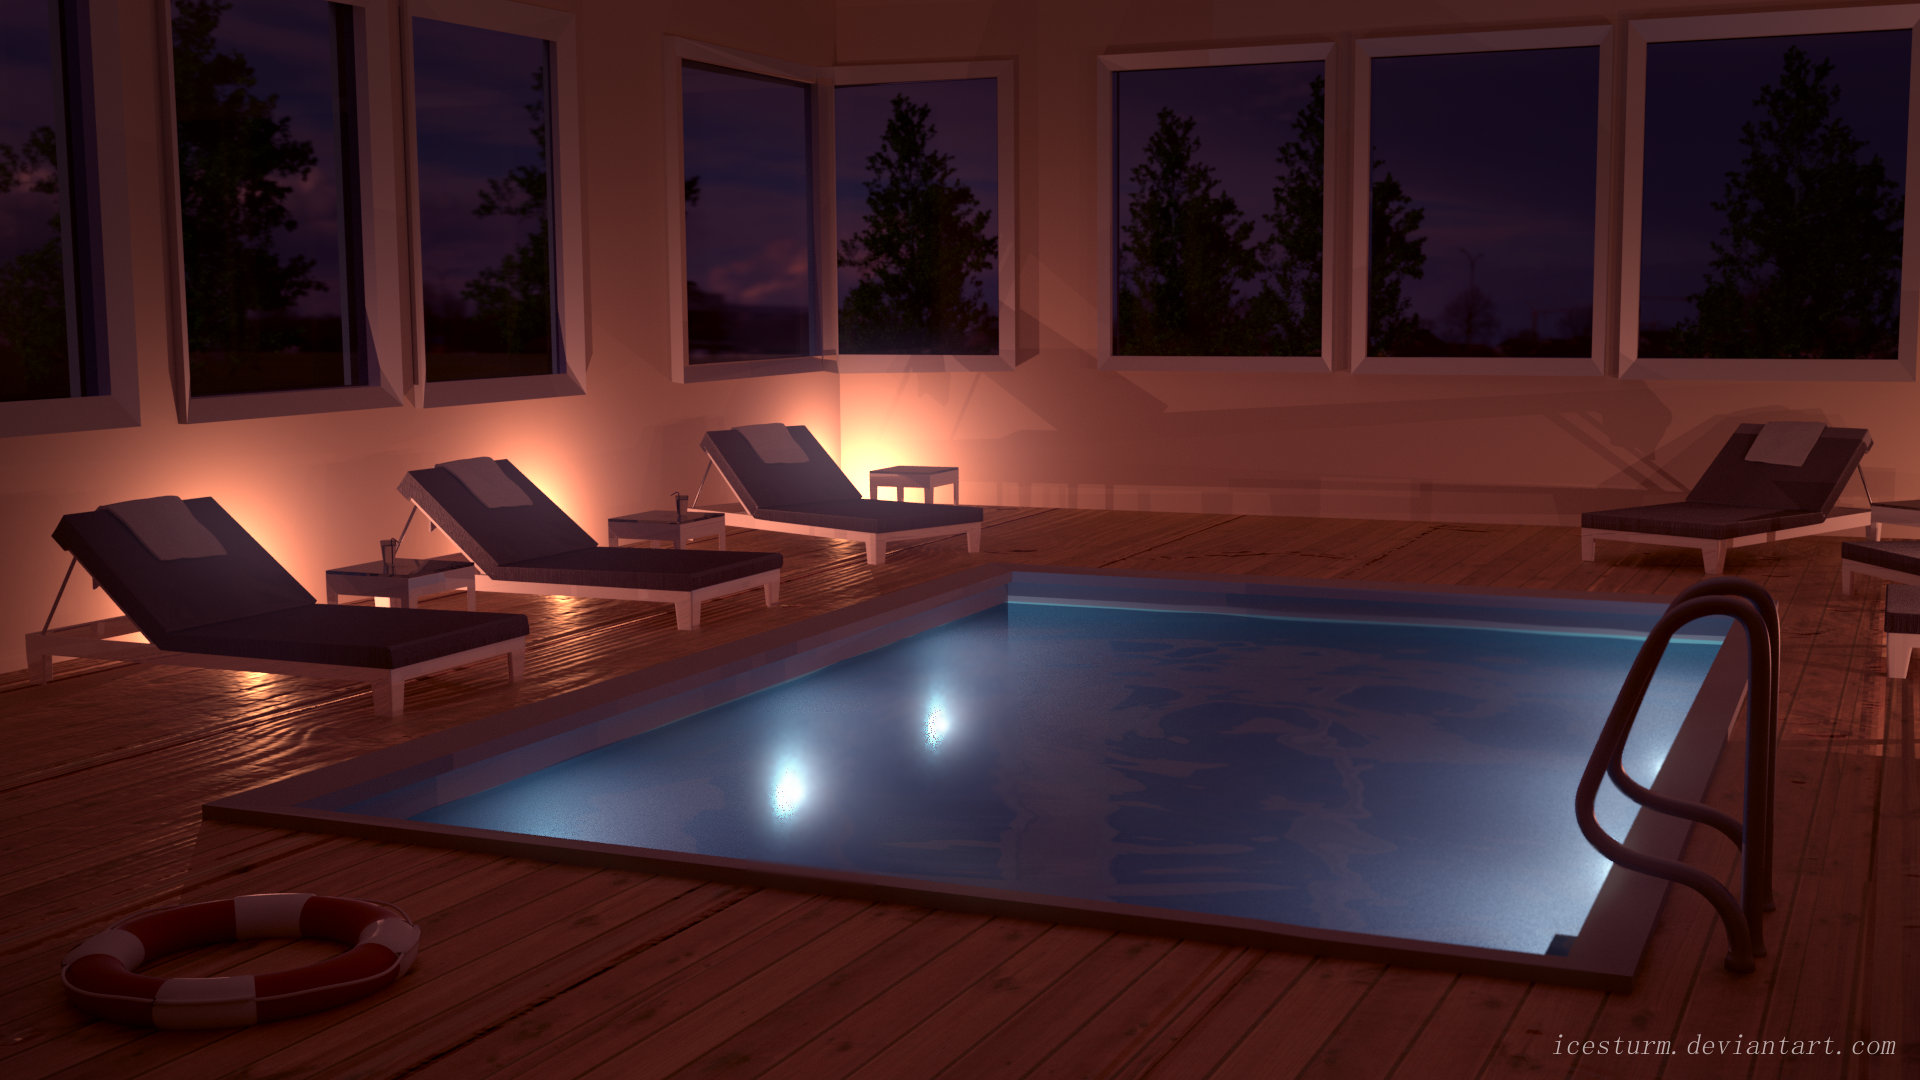 http://orig10.deviantart.net/2e68/f/2016/212/1/1/a_peaceful_pool_by_icesturm-dabzcz7.png